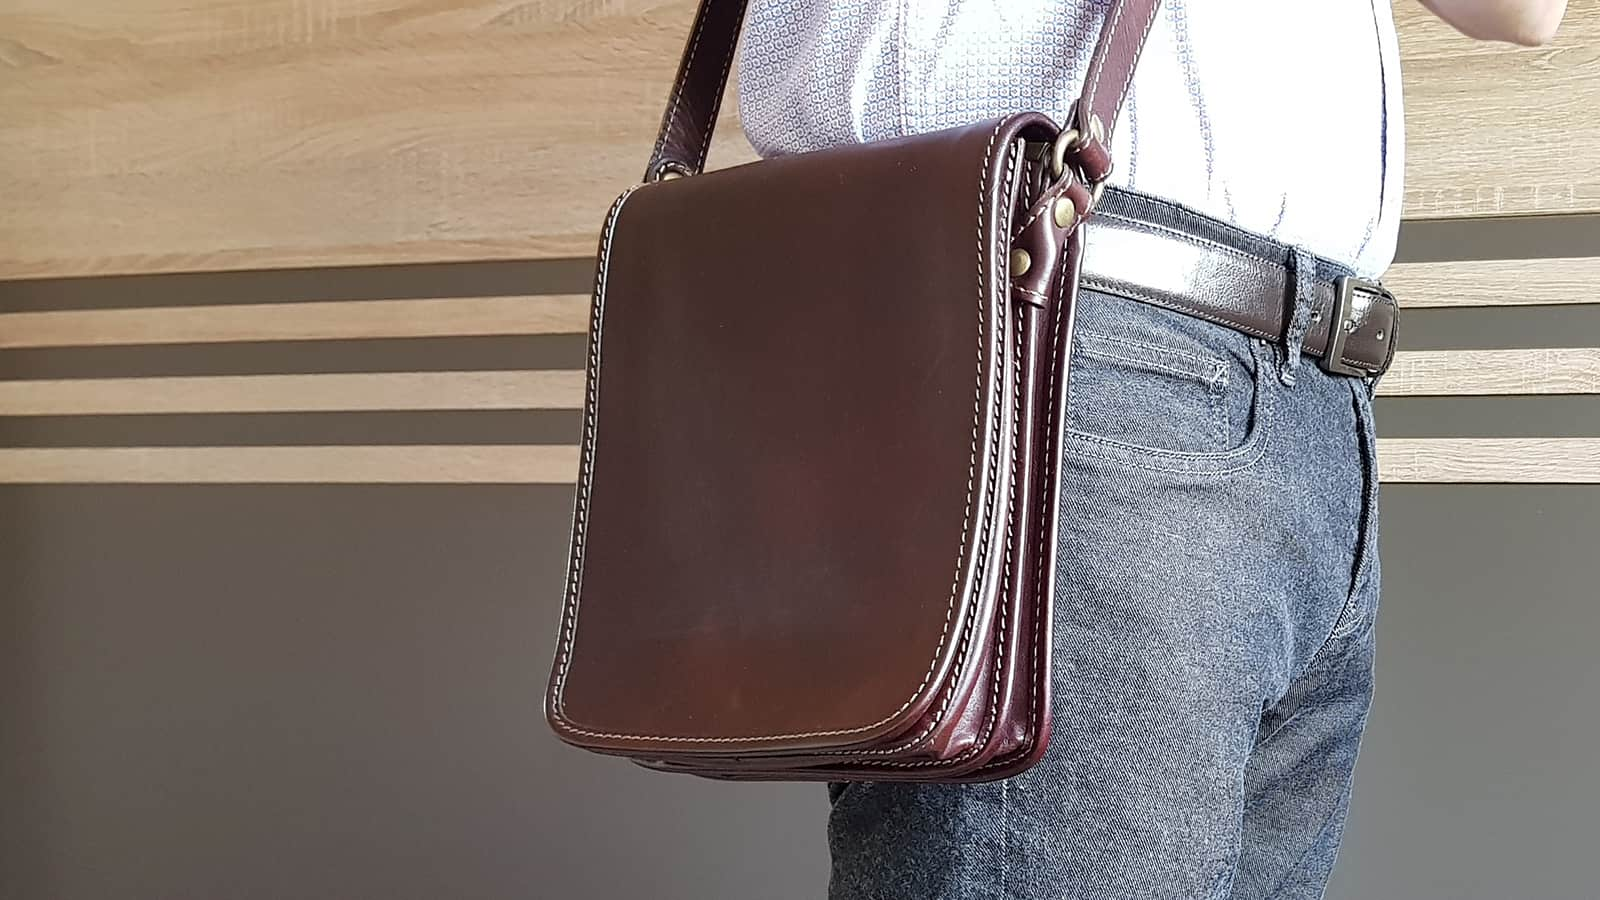 Time Resistance Messenger Bag 'On The Road' worn by a man